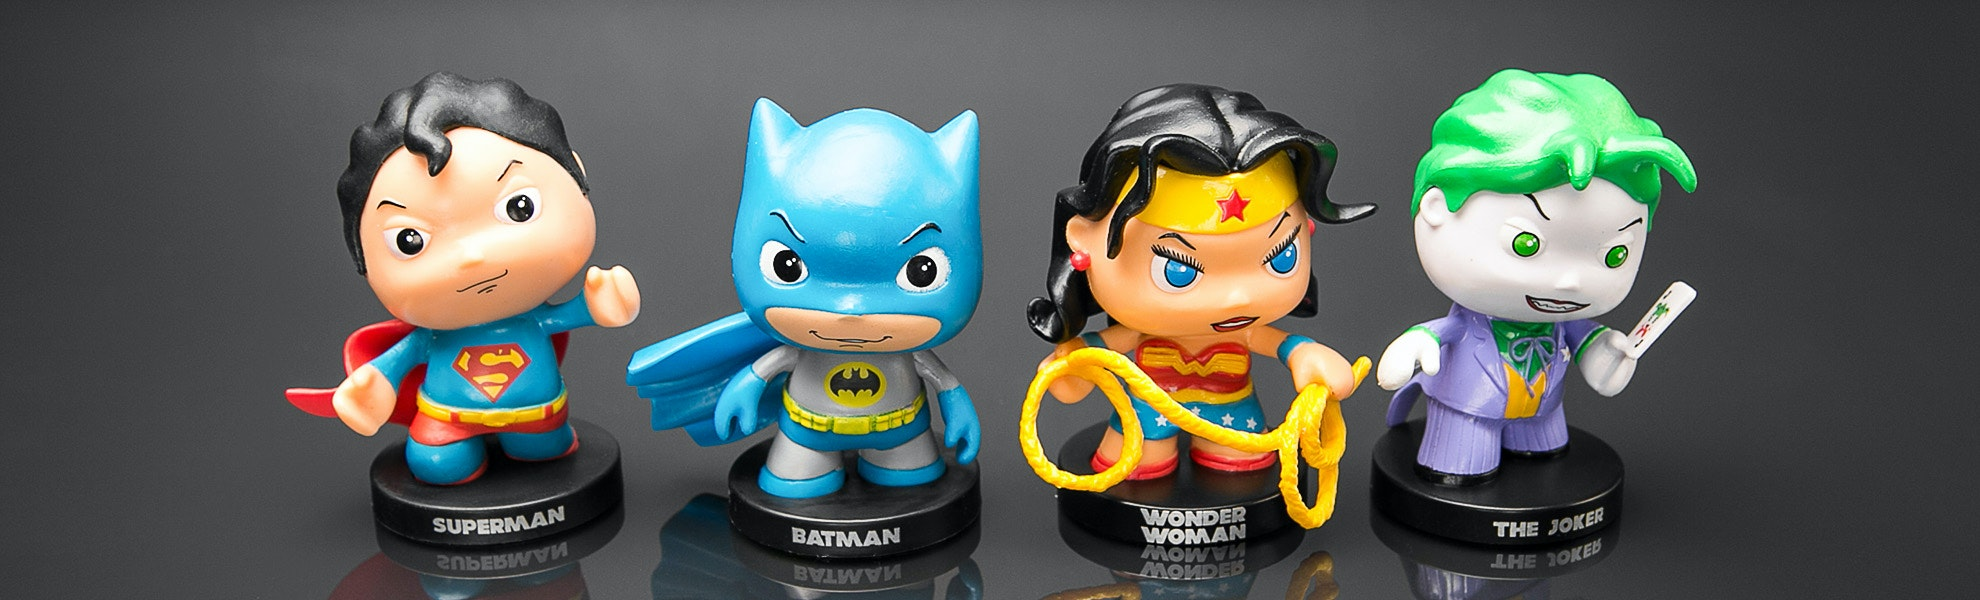 DC Little Mates Figurine Bundle